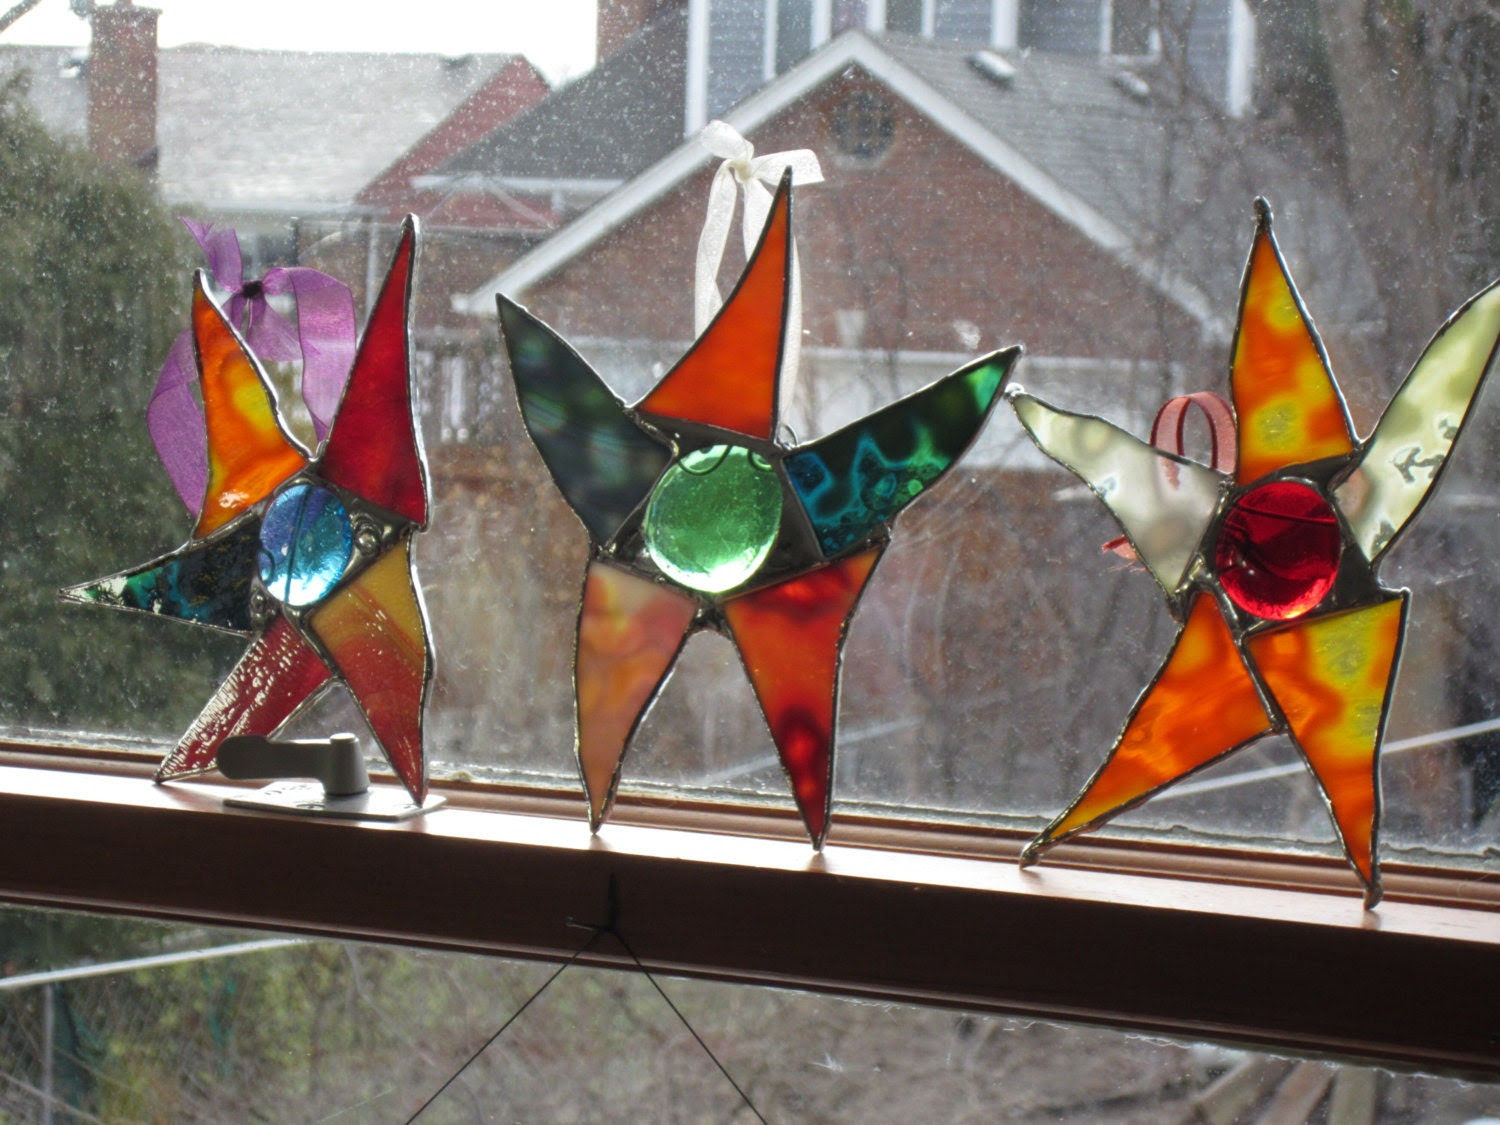 OUTDOOR ART decorations Stained glass GARDEN by stanfordglassshop